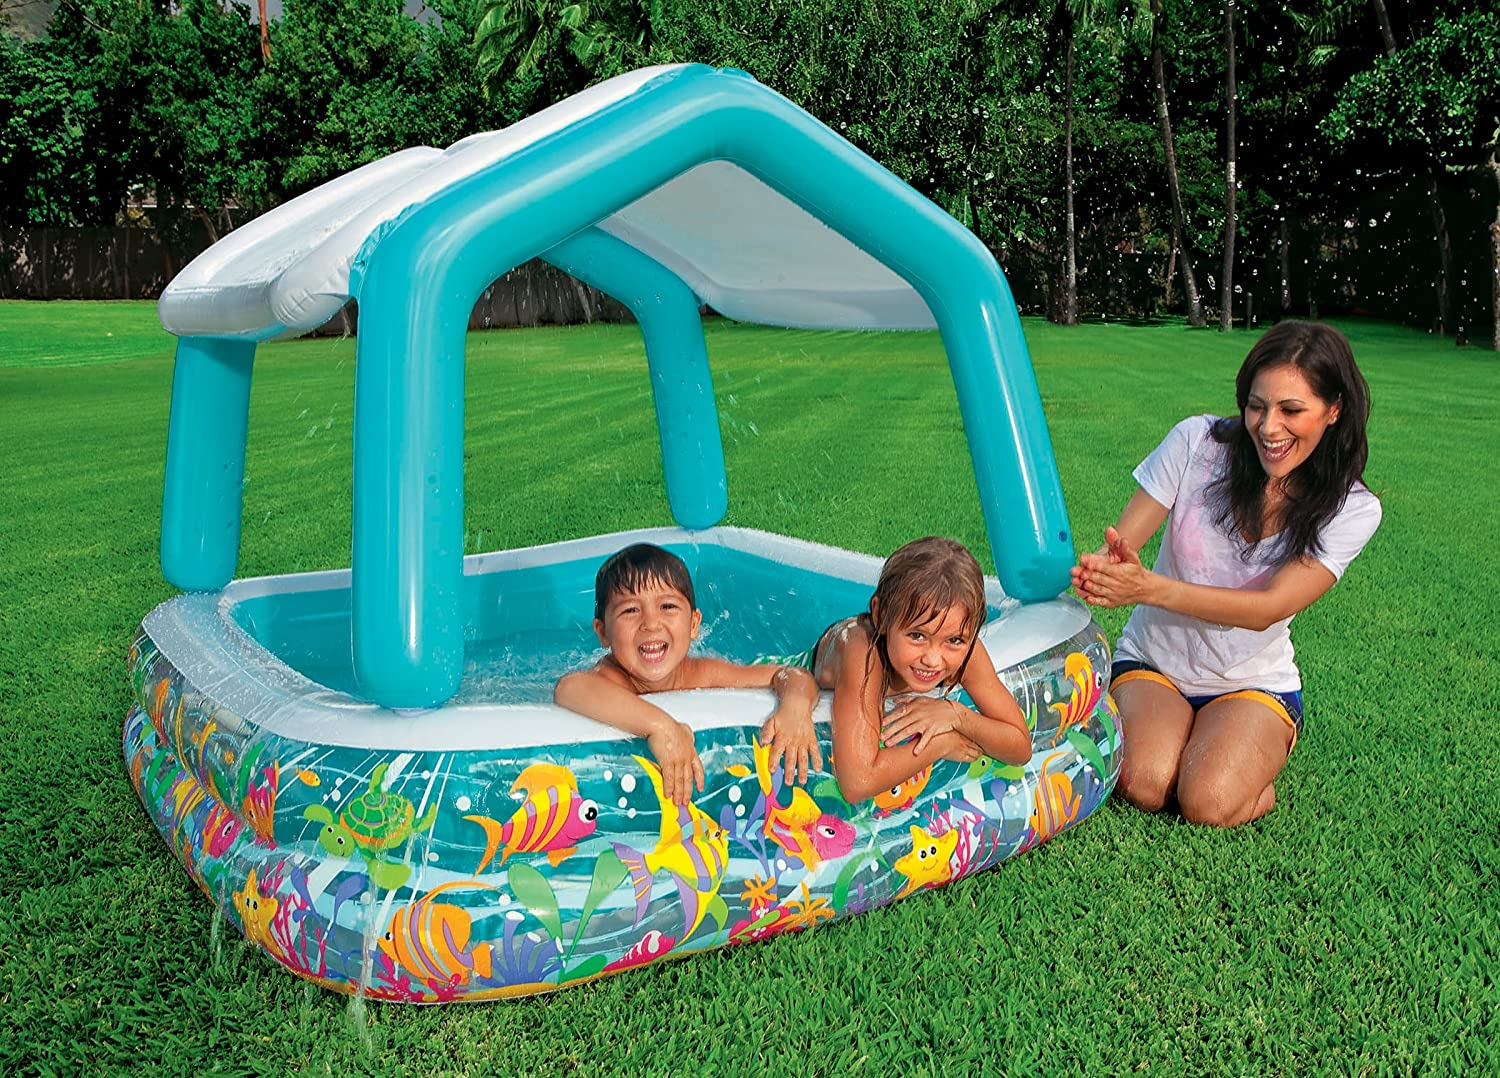 Intex 57470ep sun shade blow up pool Intex inflatable swimming pool